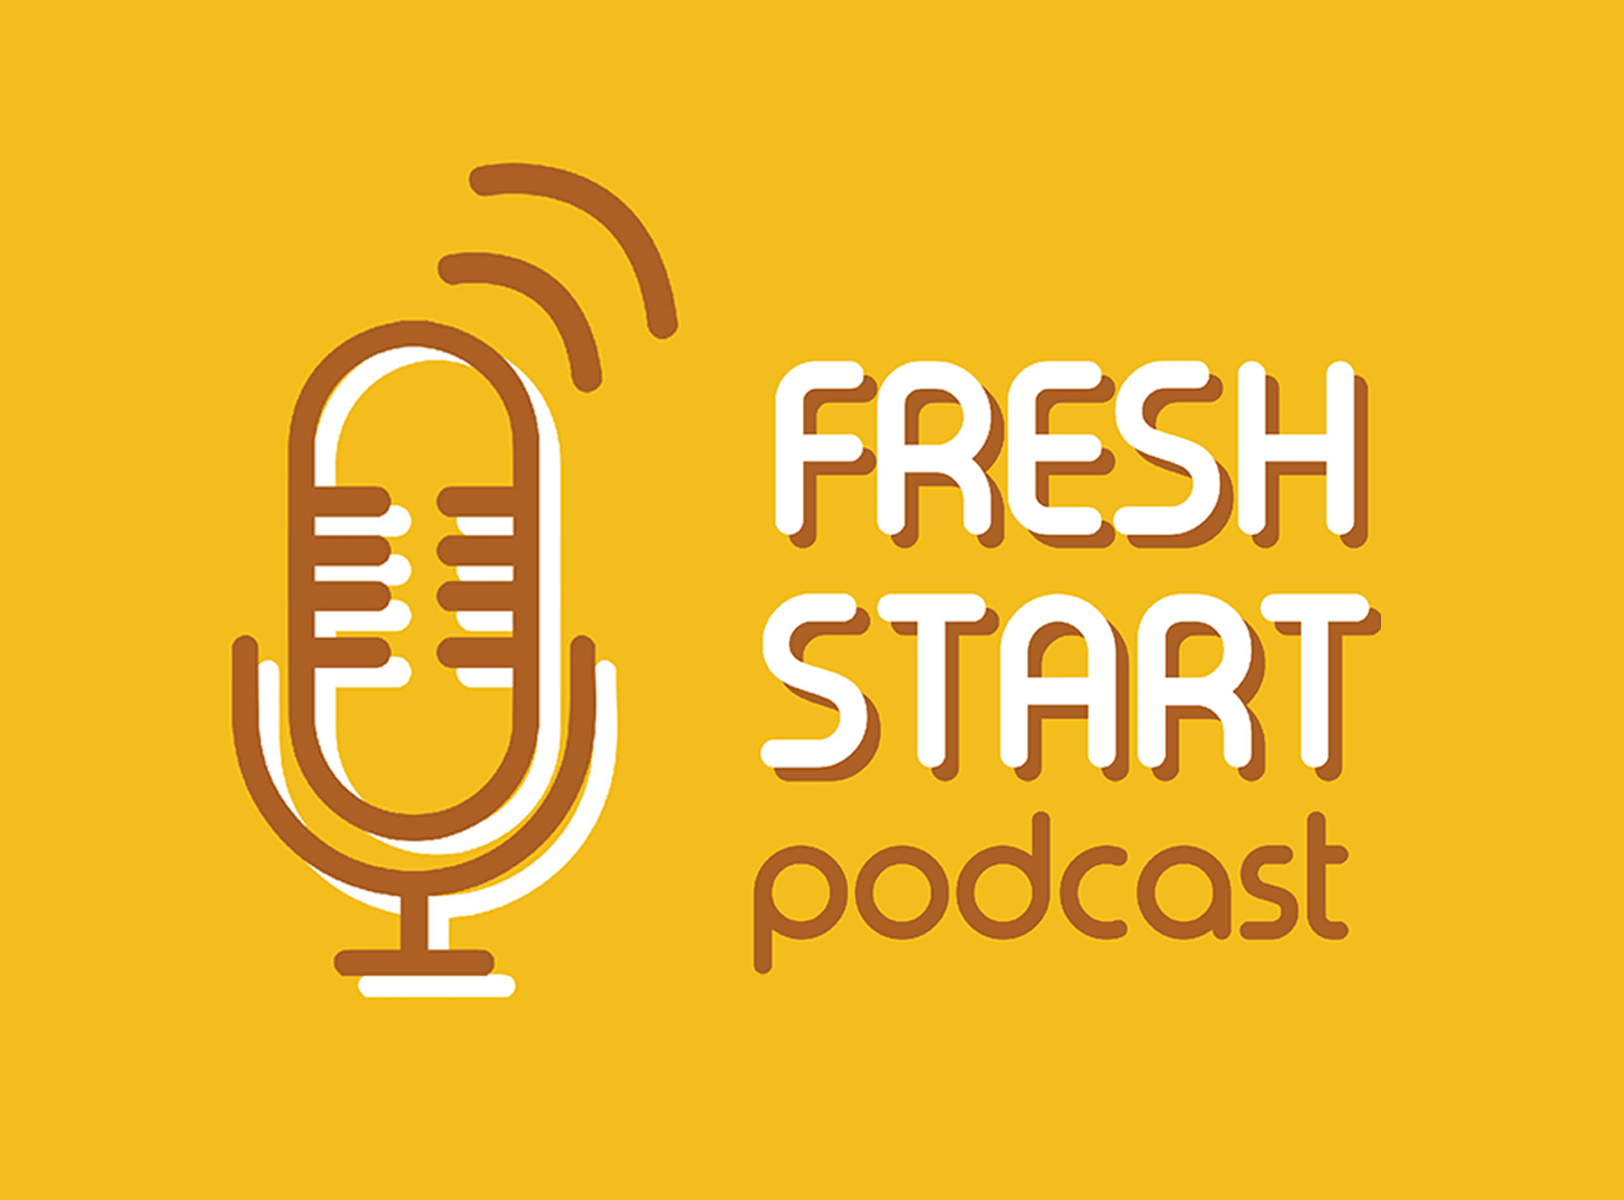 Fresh Start: Podcast News (1/20/2020 Mon.)